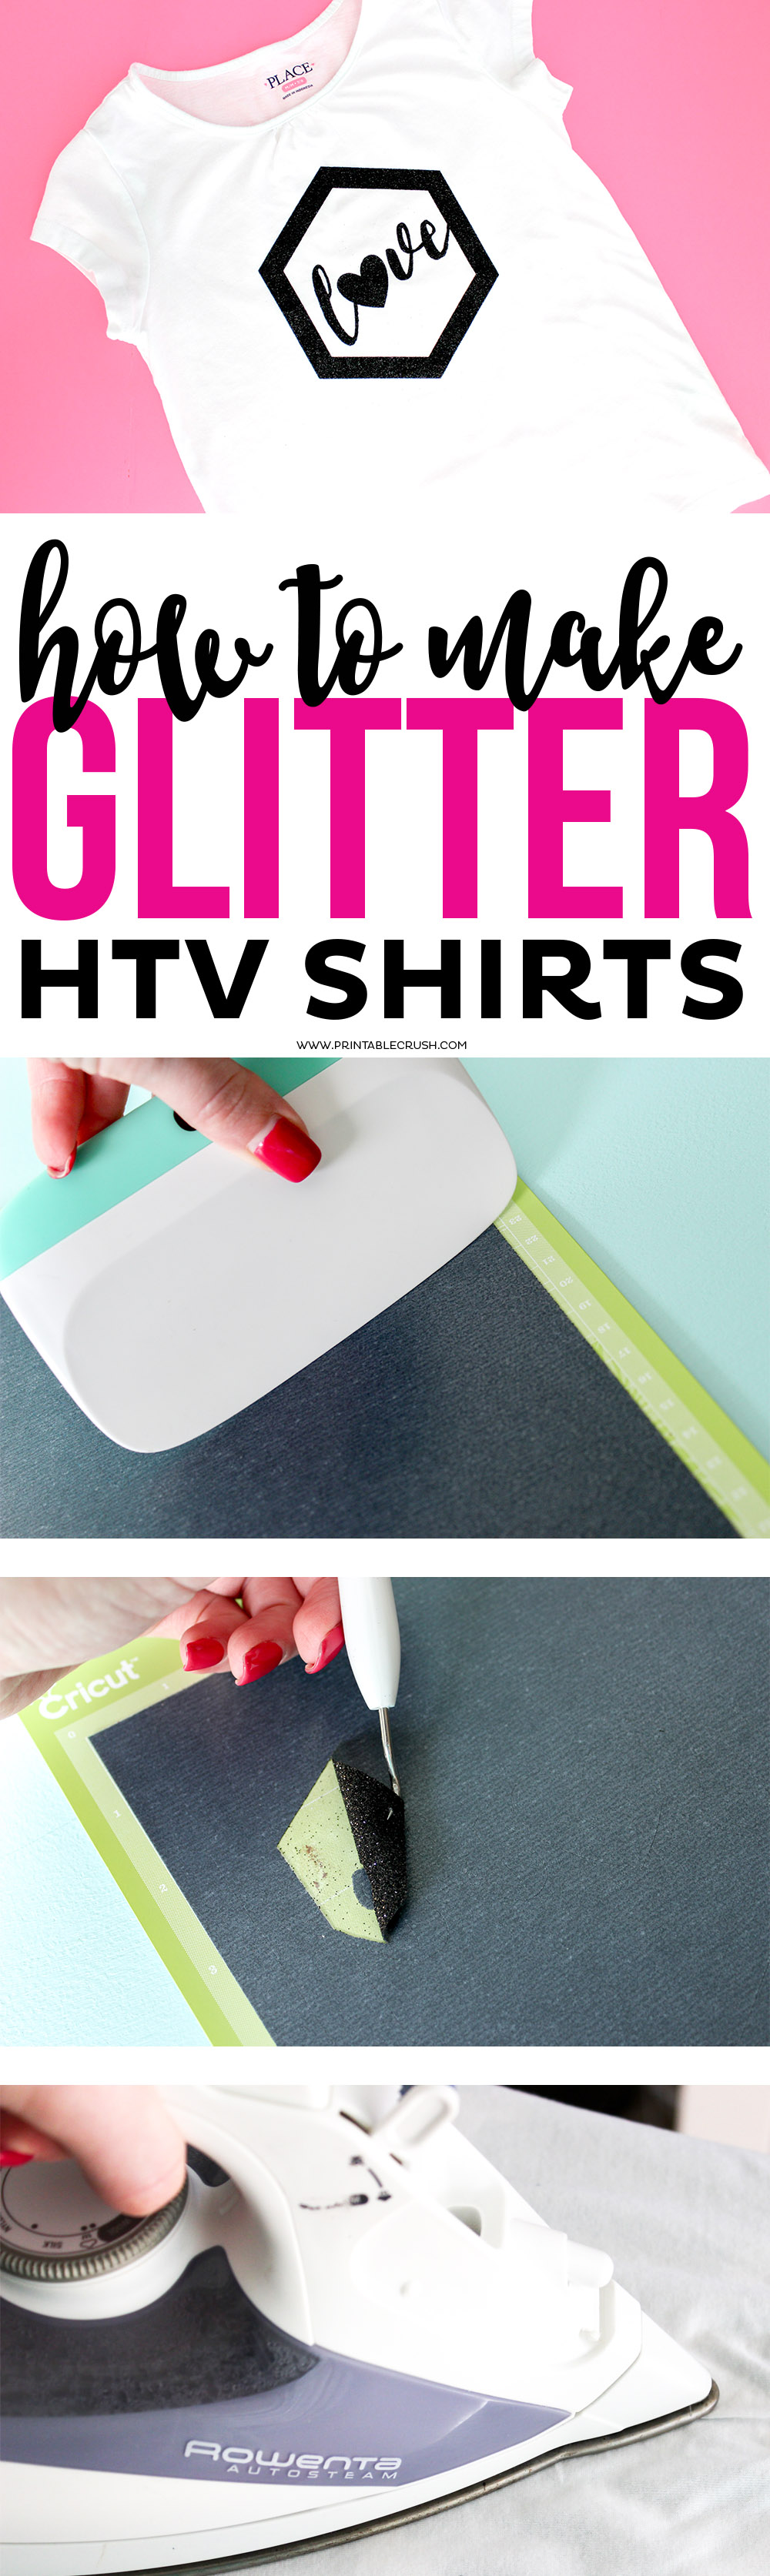 You can easily make Glitter HTV Shirts with your Cricut using this tutorial! This will show you step by step instructions to make the perfect sparkly custom t-shirt!